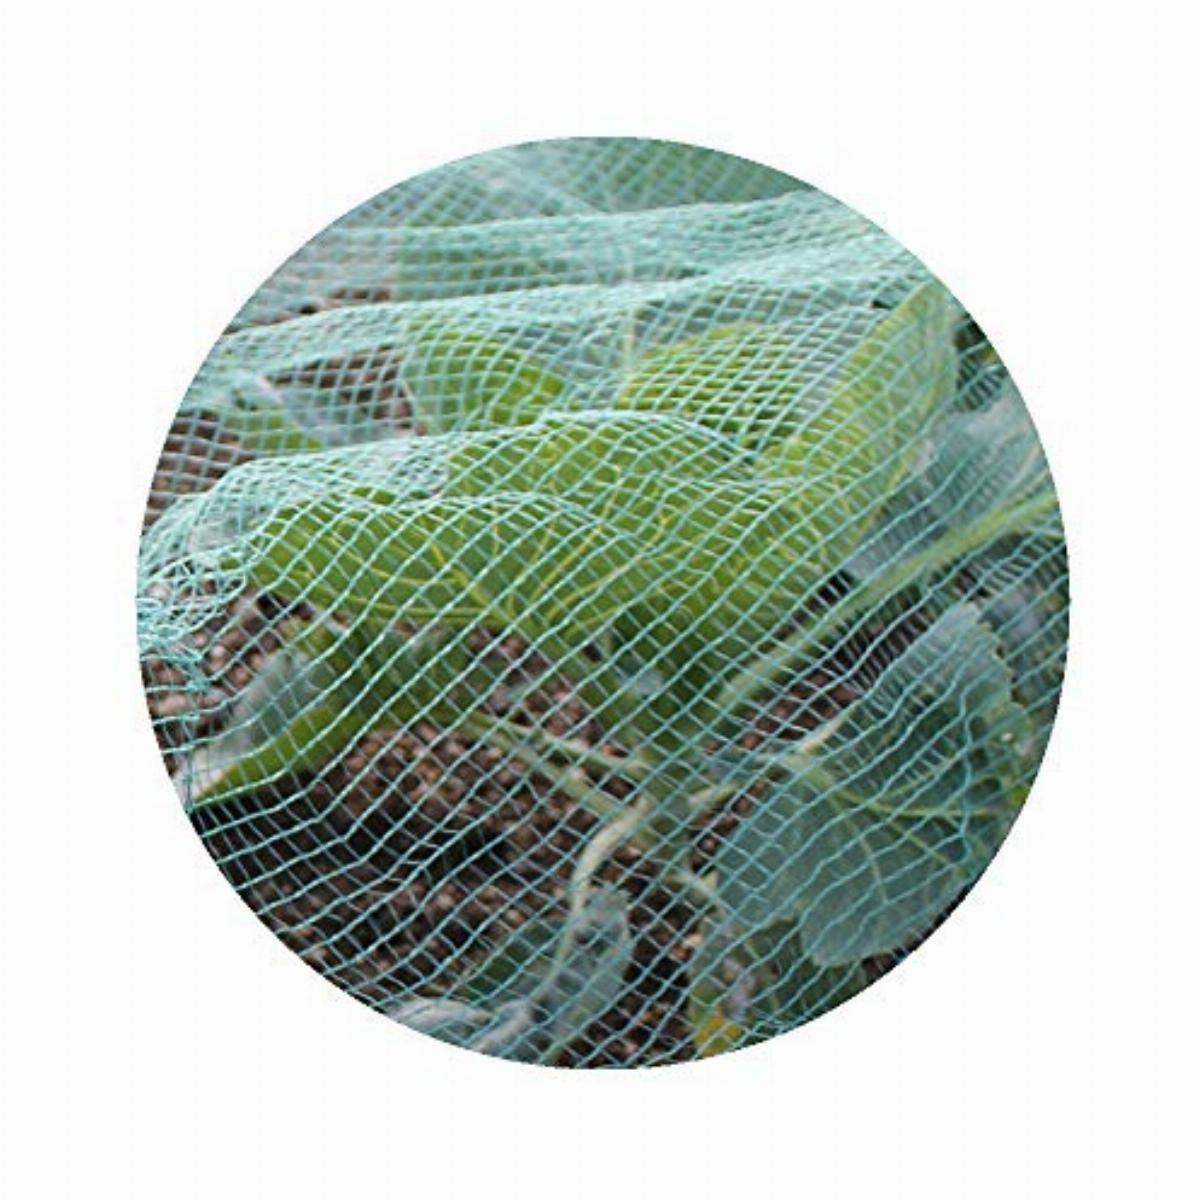 Gardening Naturally Soft Green Anti Butterfly Netting For Garden Fruit Crop Protection 4m X 10m